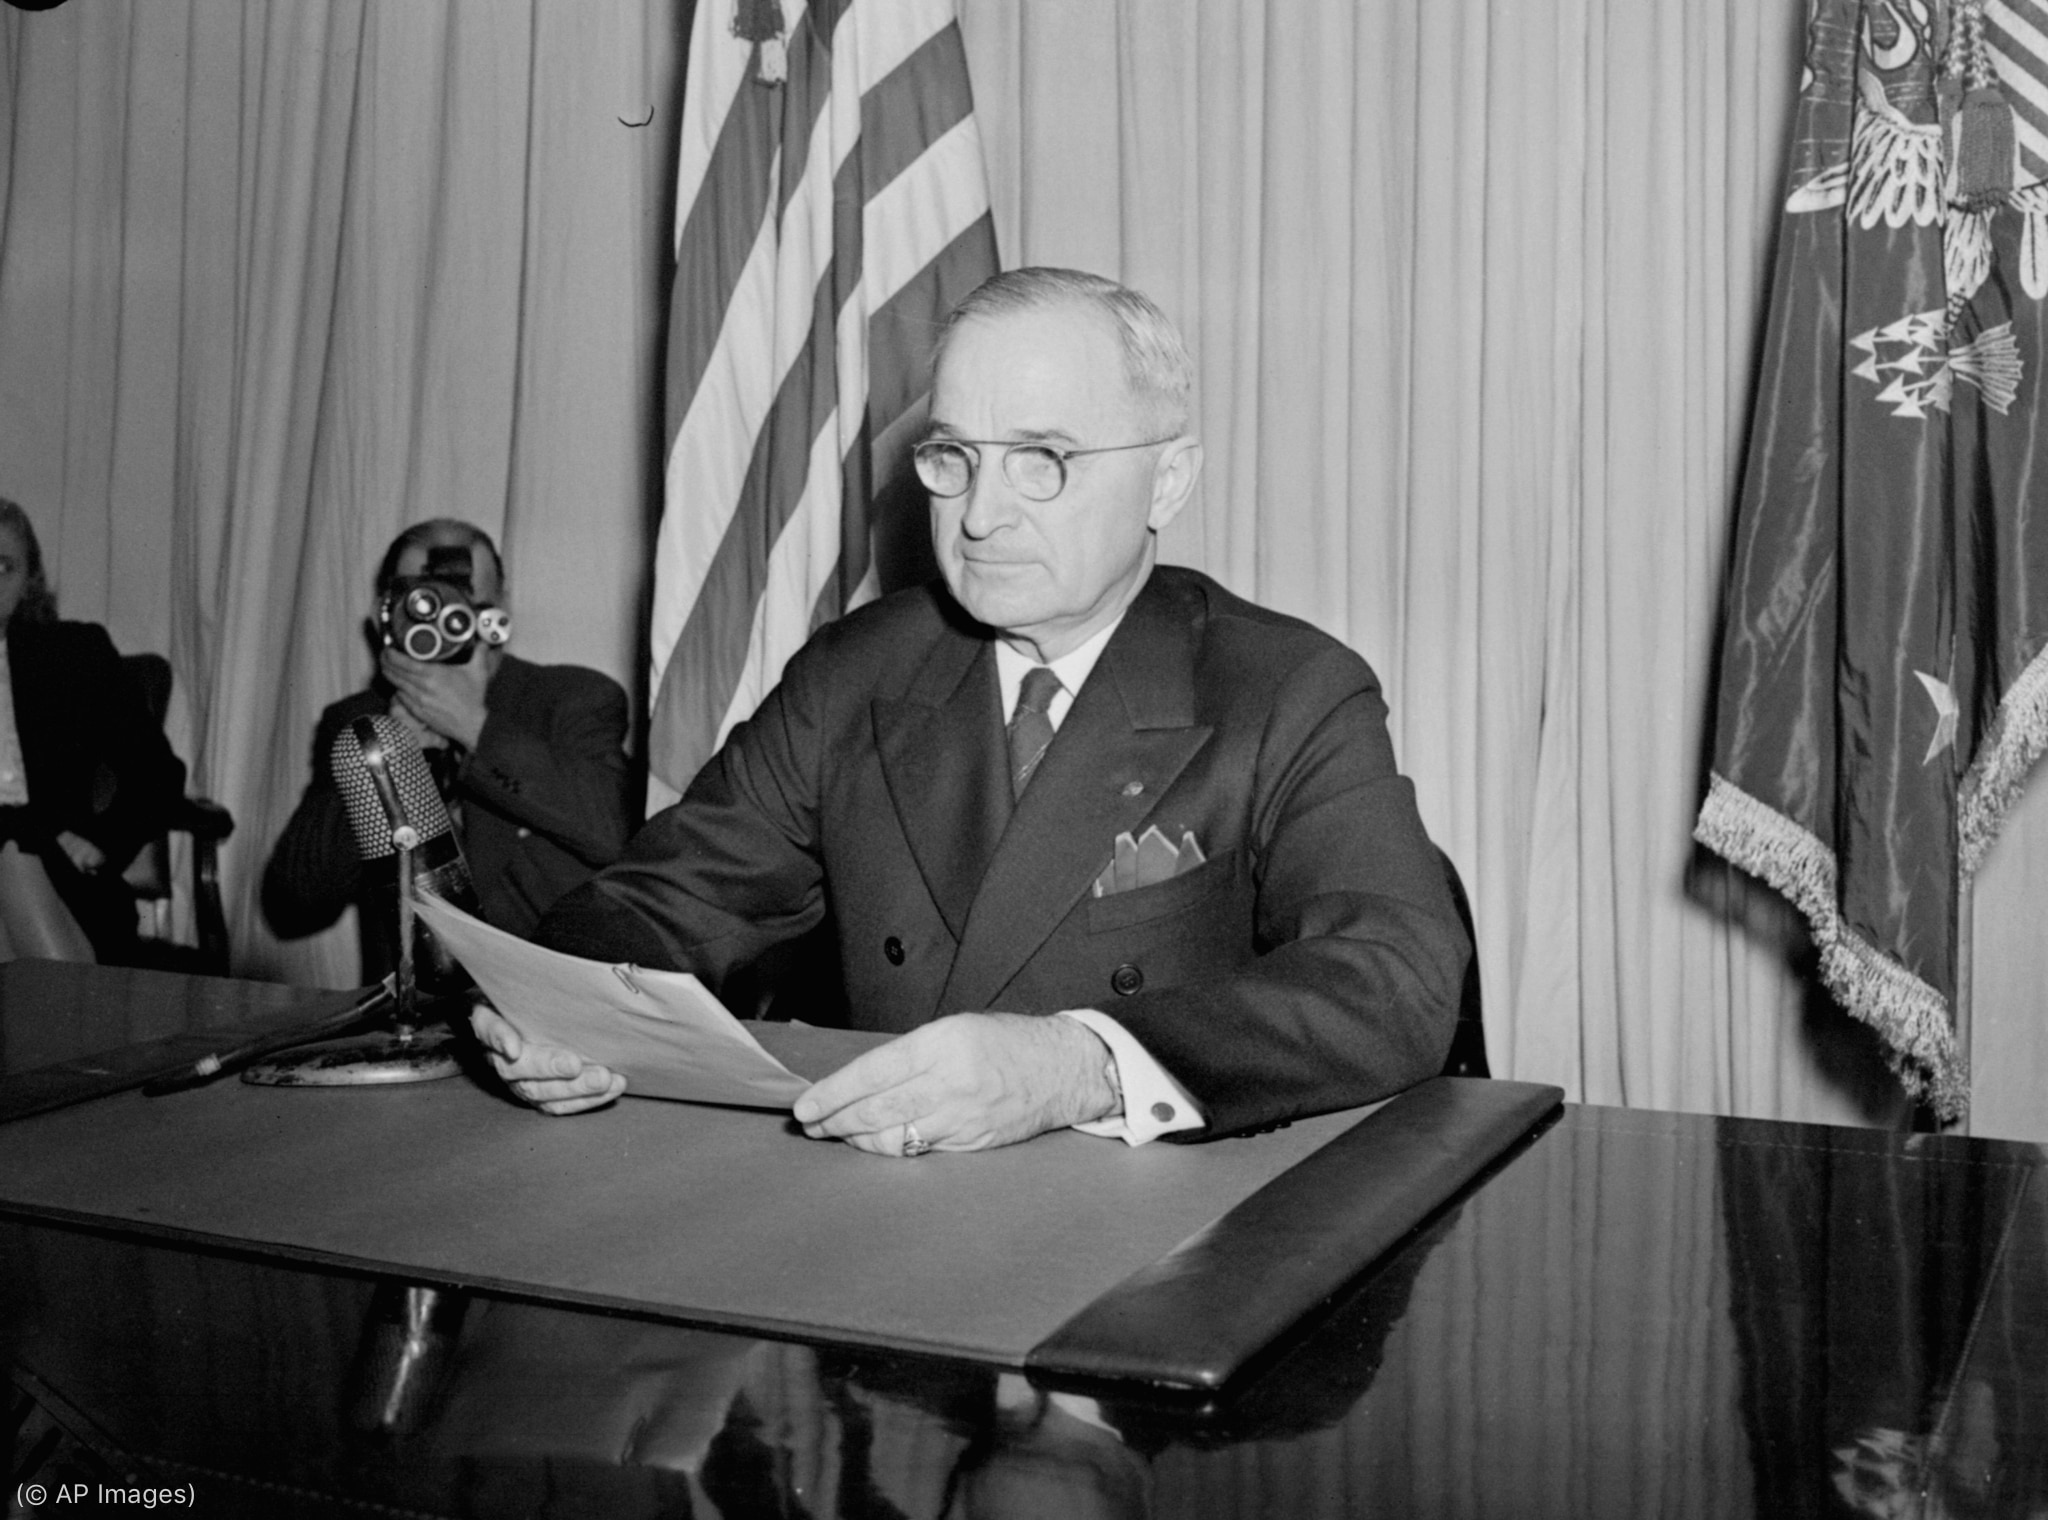 President Truman sitting before a microphone, holding a document (© AP Images)